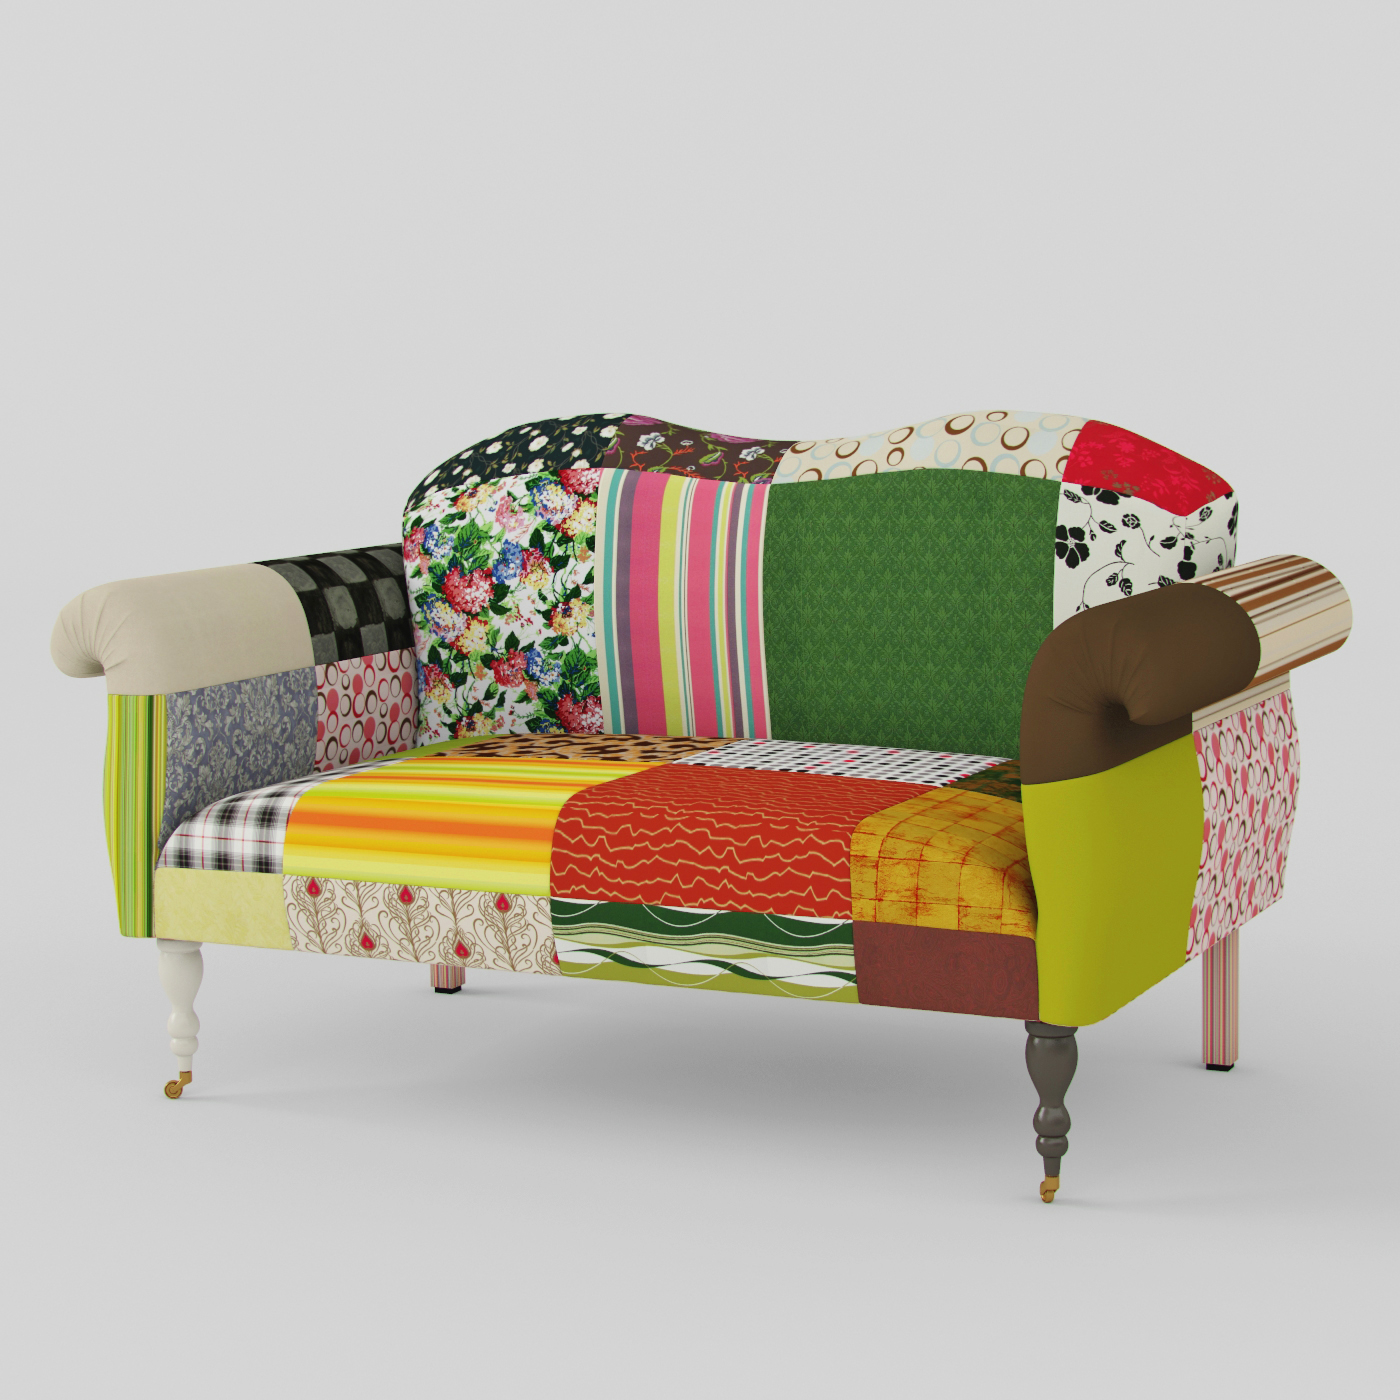 Full Size of Where To Buy Patchwork Sofa Cover Bed Ireland Couch Dfs Ebay Corner Gumtree Amazon Quilt Boxspring Mit Schlaffunktion Polster Himolla U Form Xxl Graues Sofa Sofa Patchwork